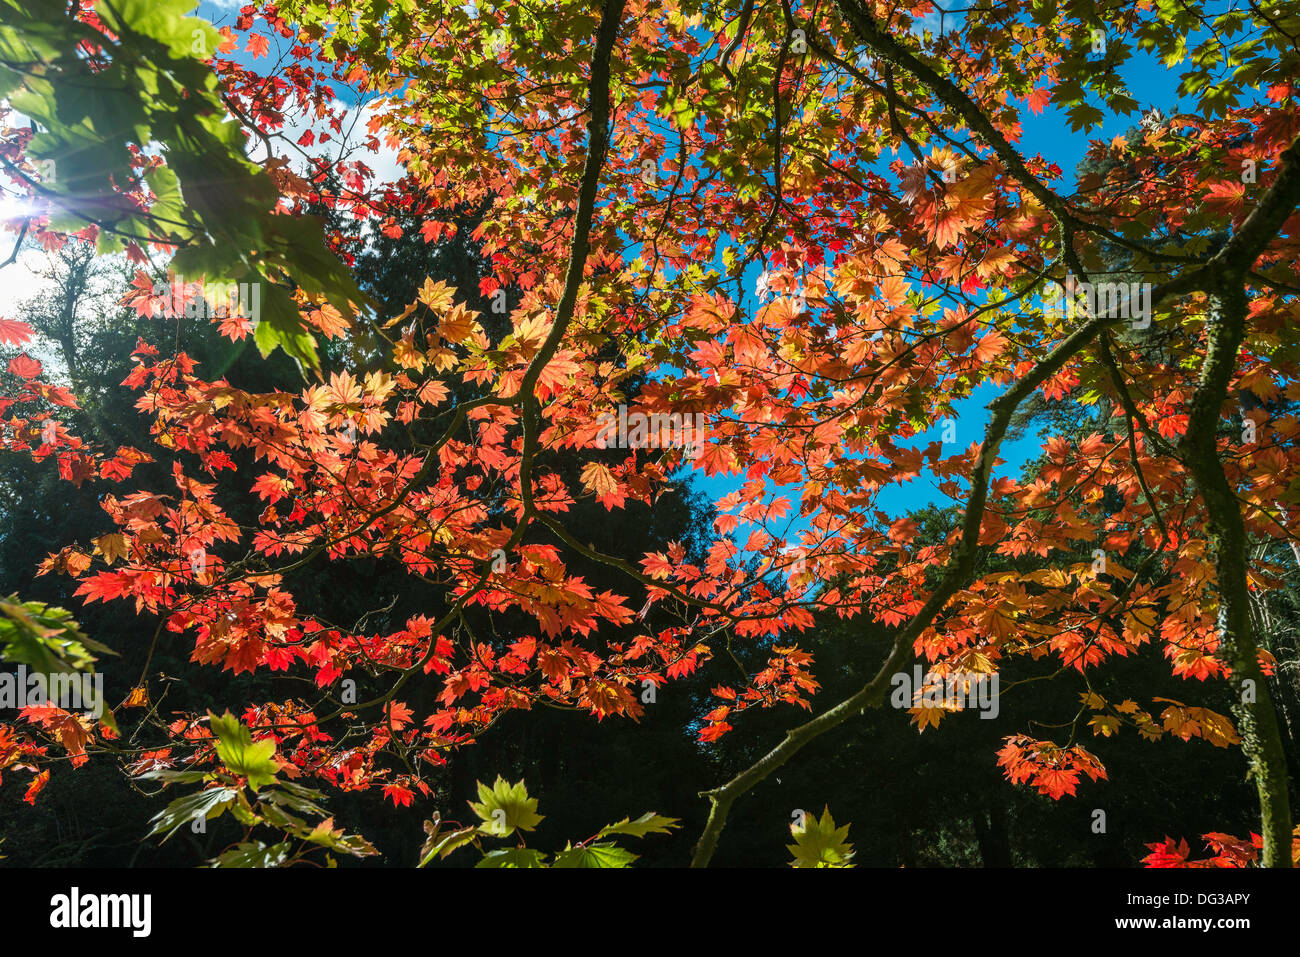 Acer-Baum in Herbstfarben in National Arboretum, Westonbirt nr Tetbury Glos. Engalnd UK. von der Forestry Commission verwaltet. Stockbild